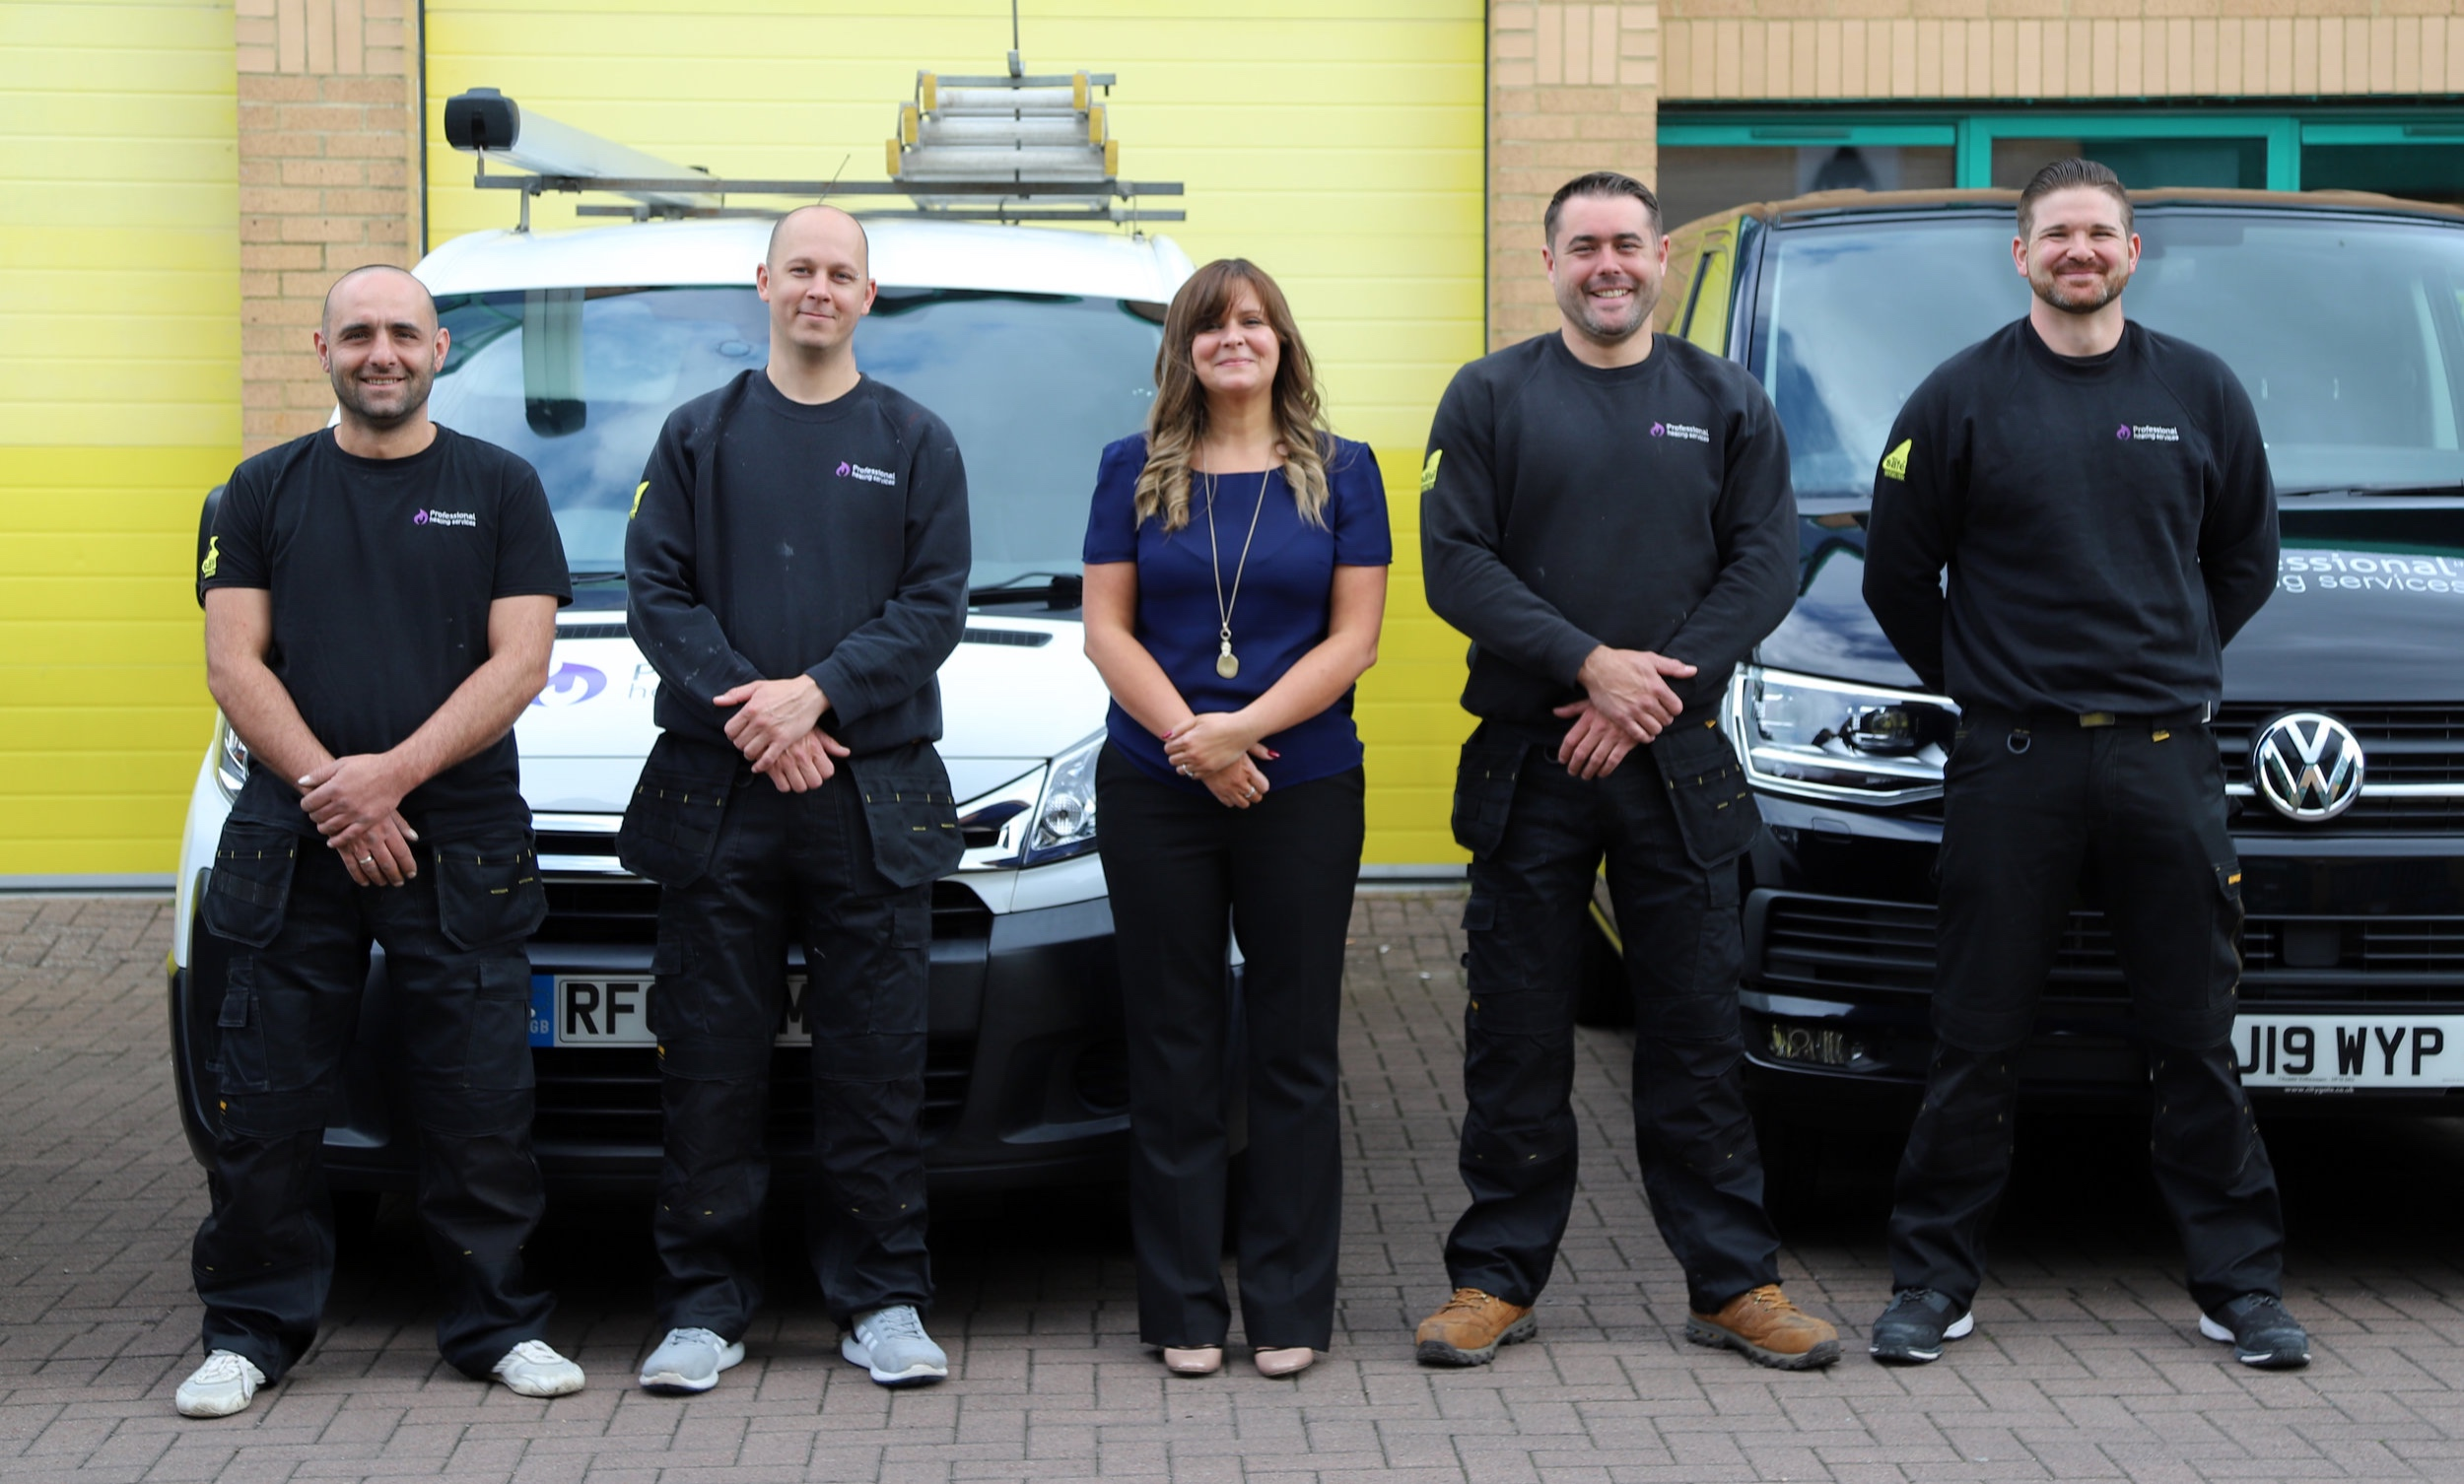 Bracknell Heating and plumbing repair company team bracknell_ascot_Atag_photo.jpg